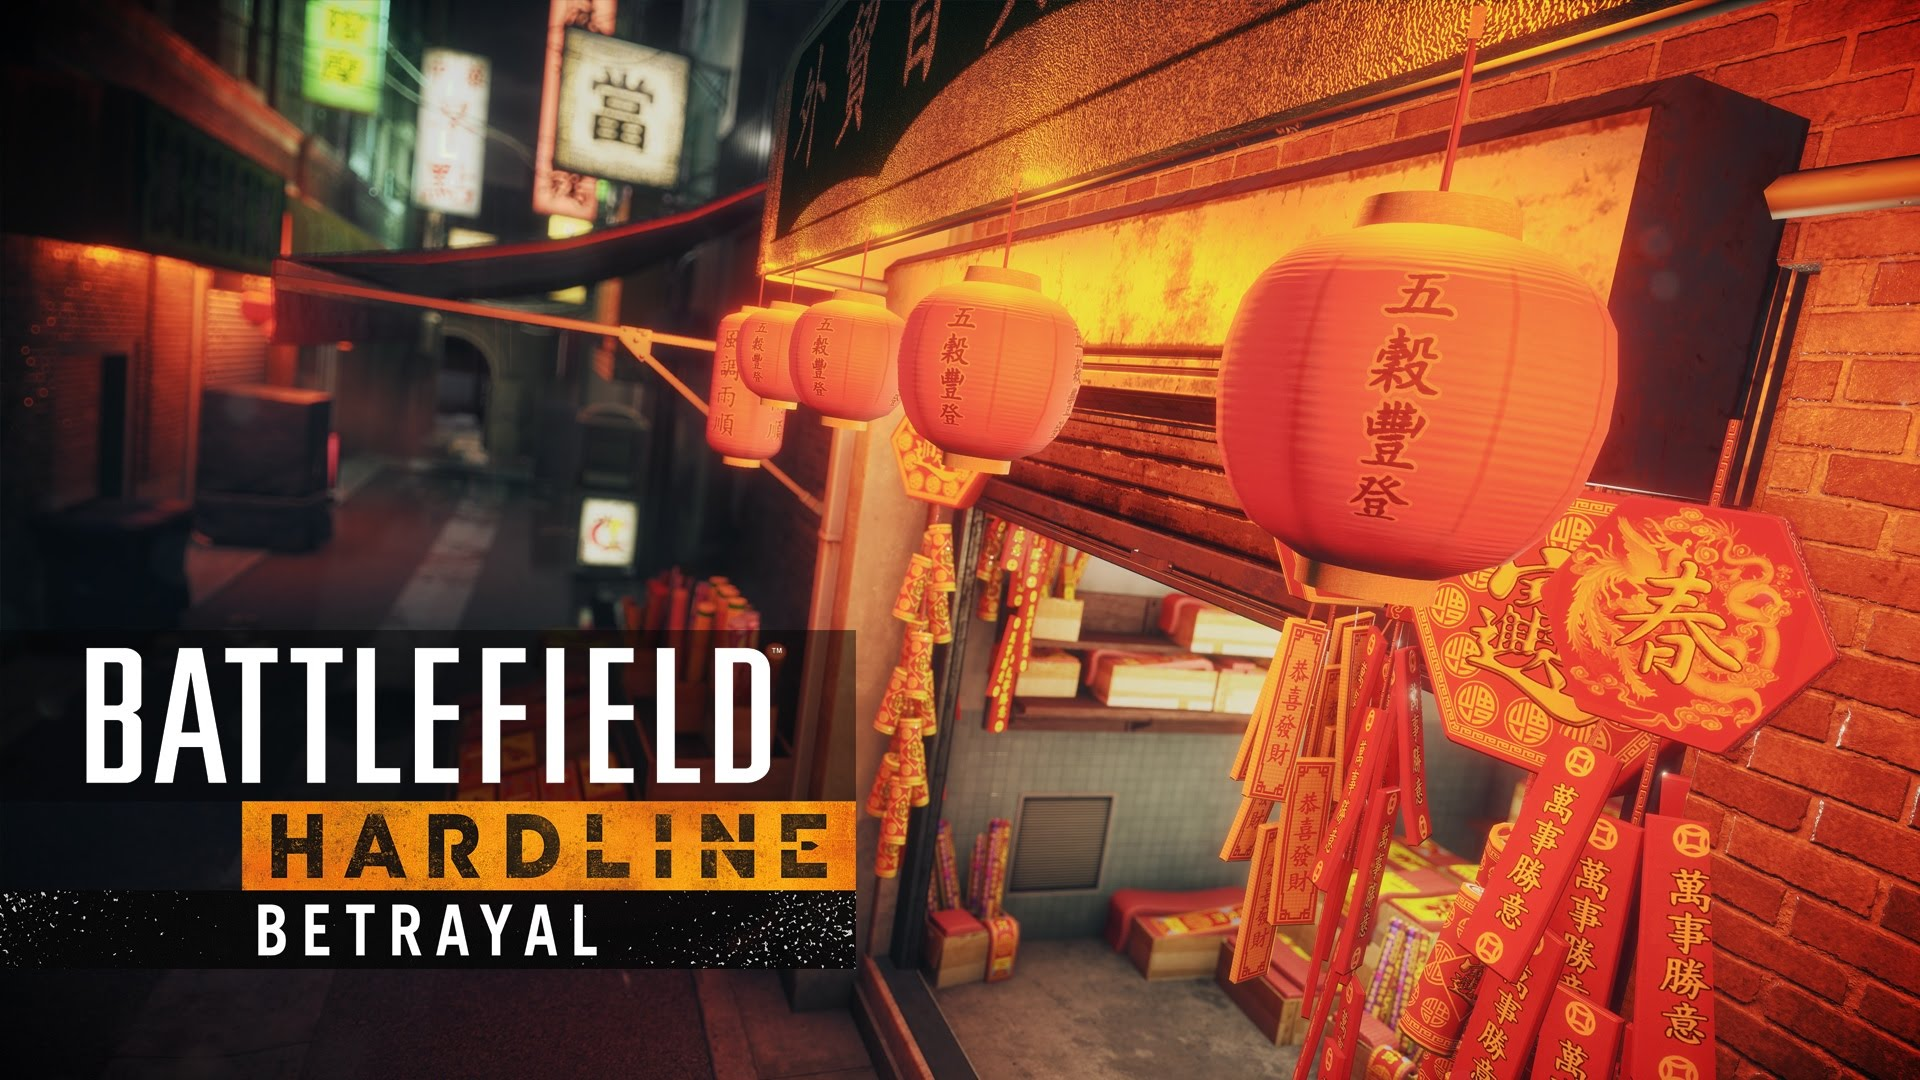 Battlefield Hardline: Betrayal - Behind the Scenes on Chinatown